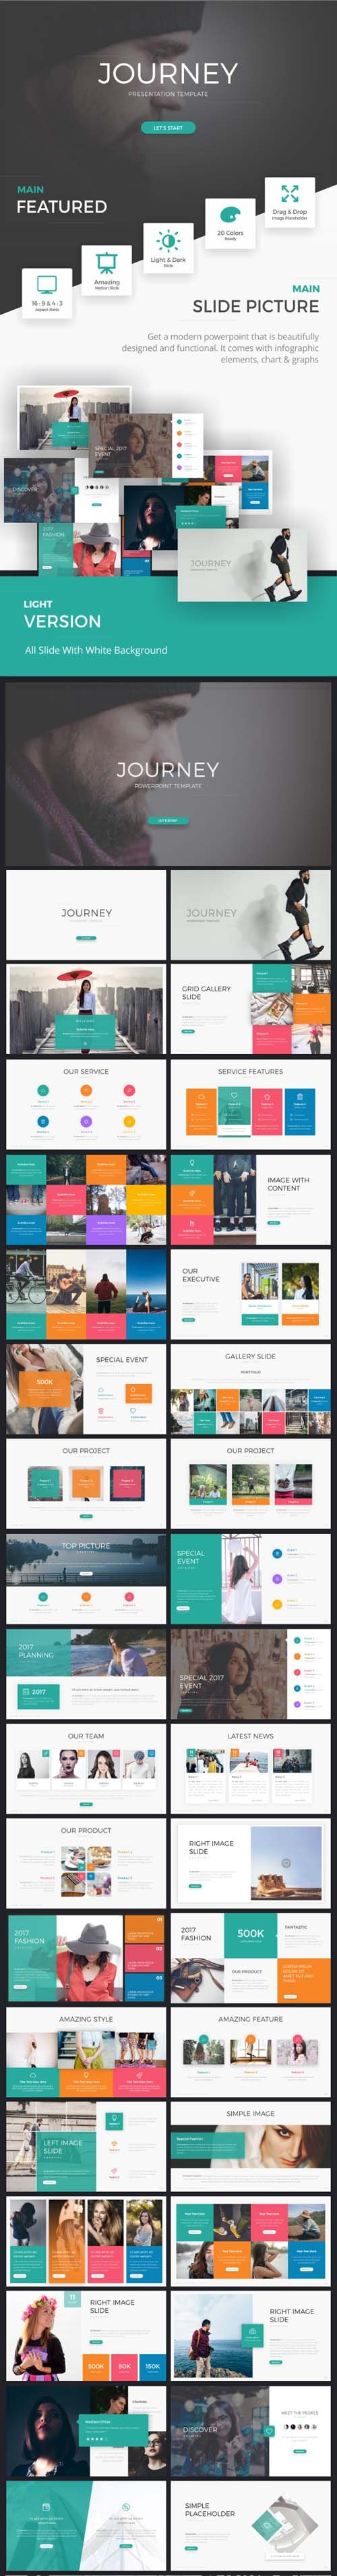 Journey Presentation Template 19349511